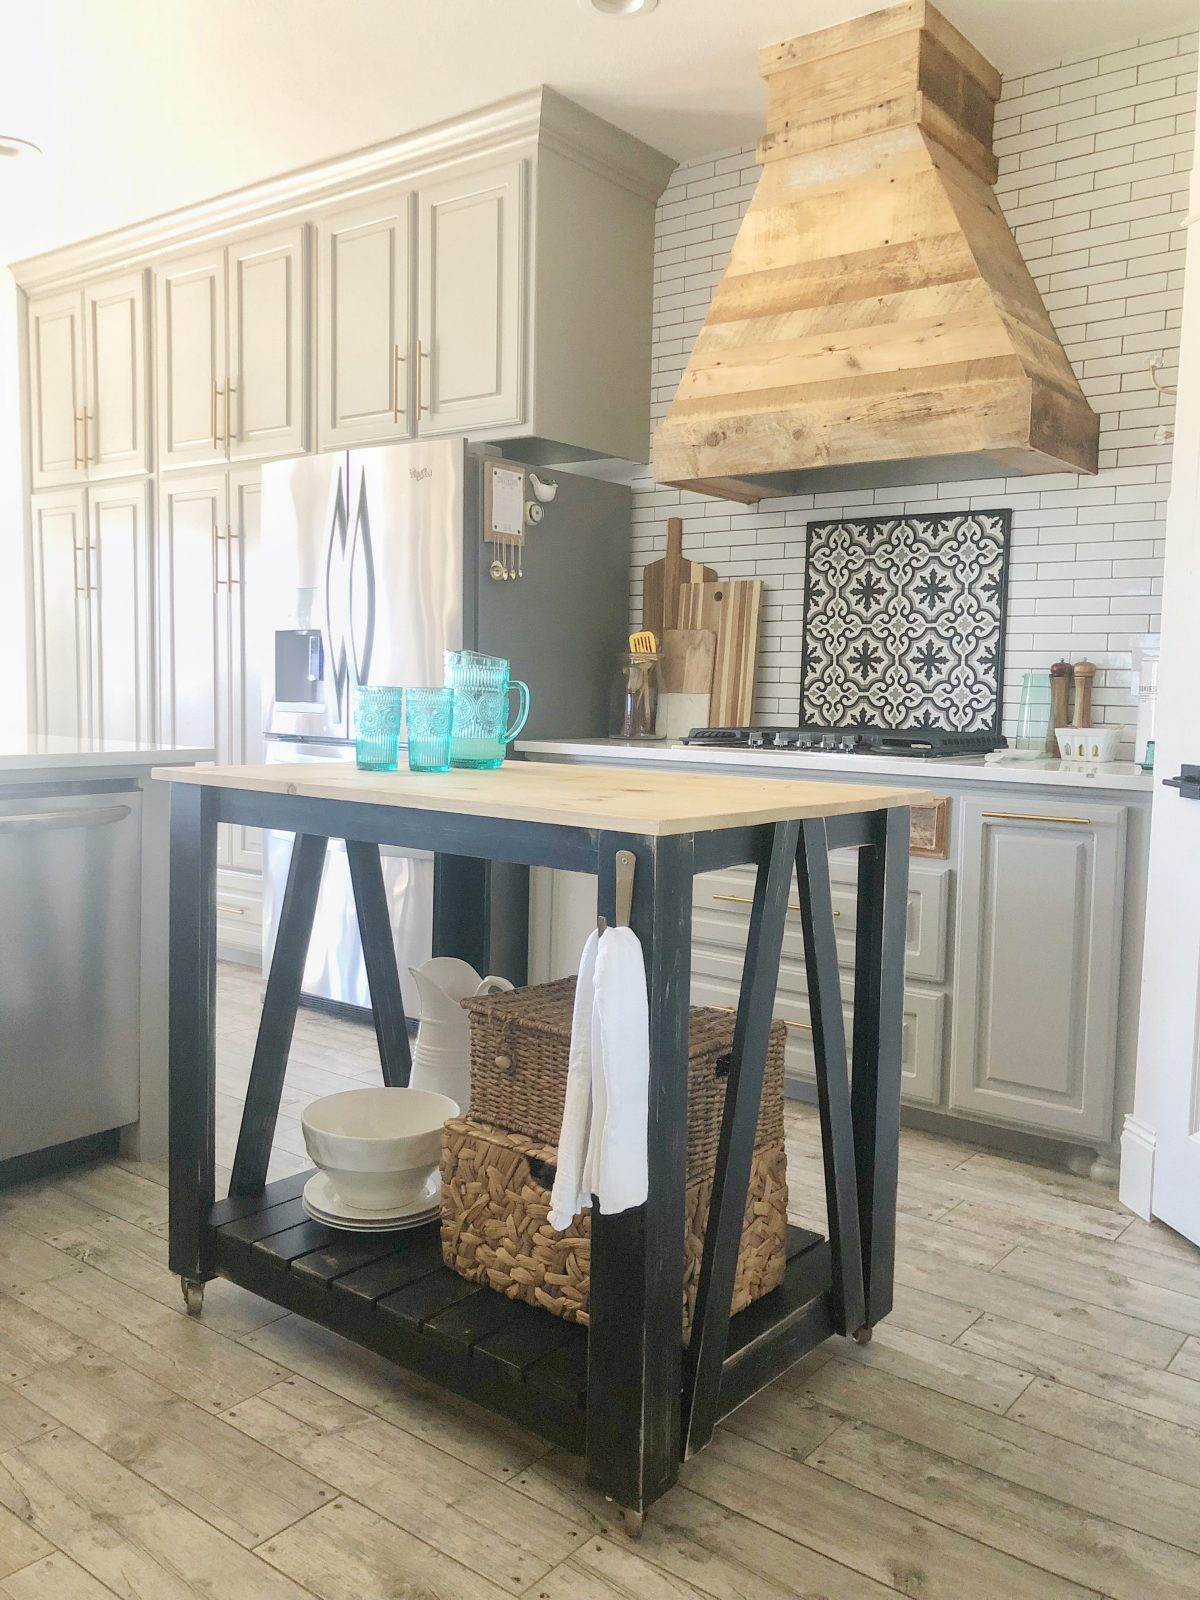 diy modern farmhouse kitchen island cart - Farmhouse Kitchen Island